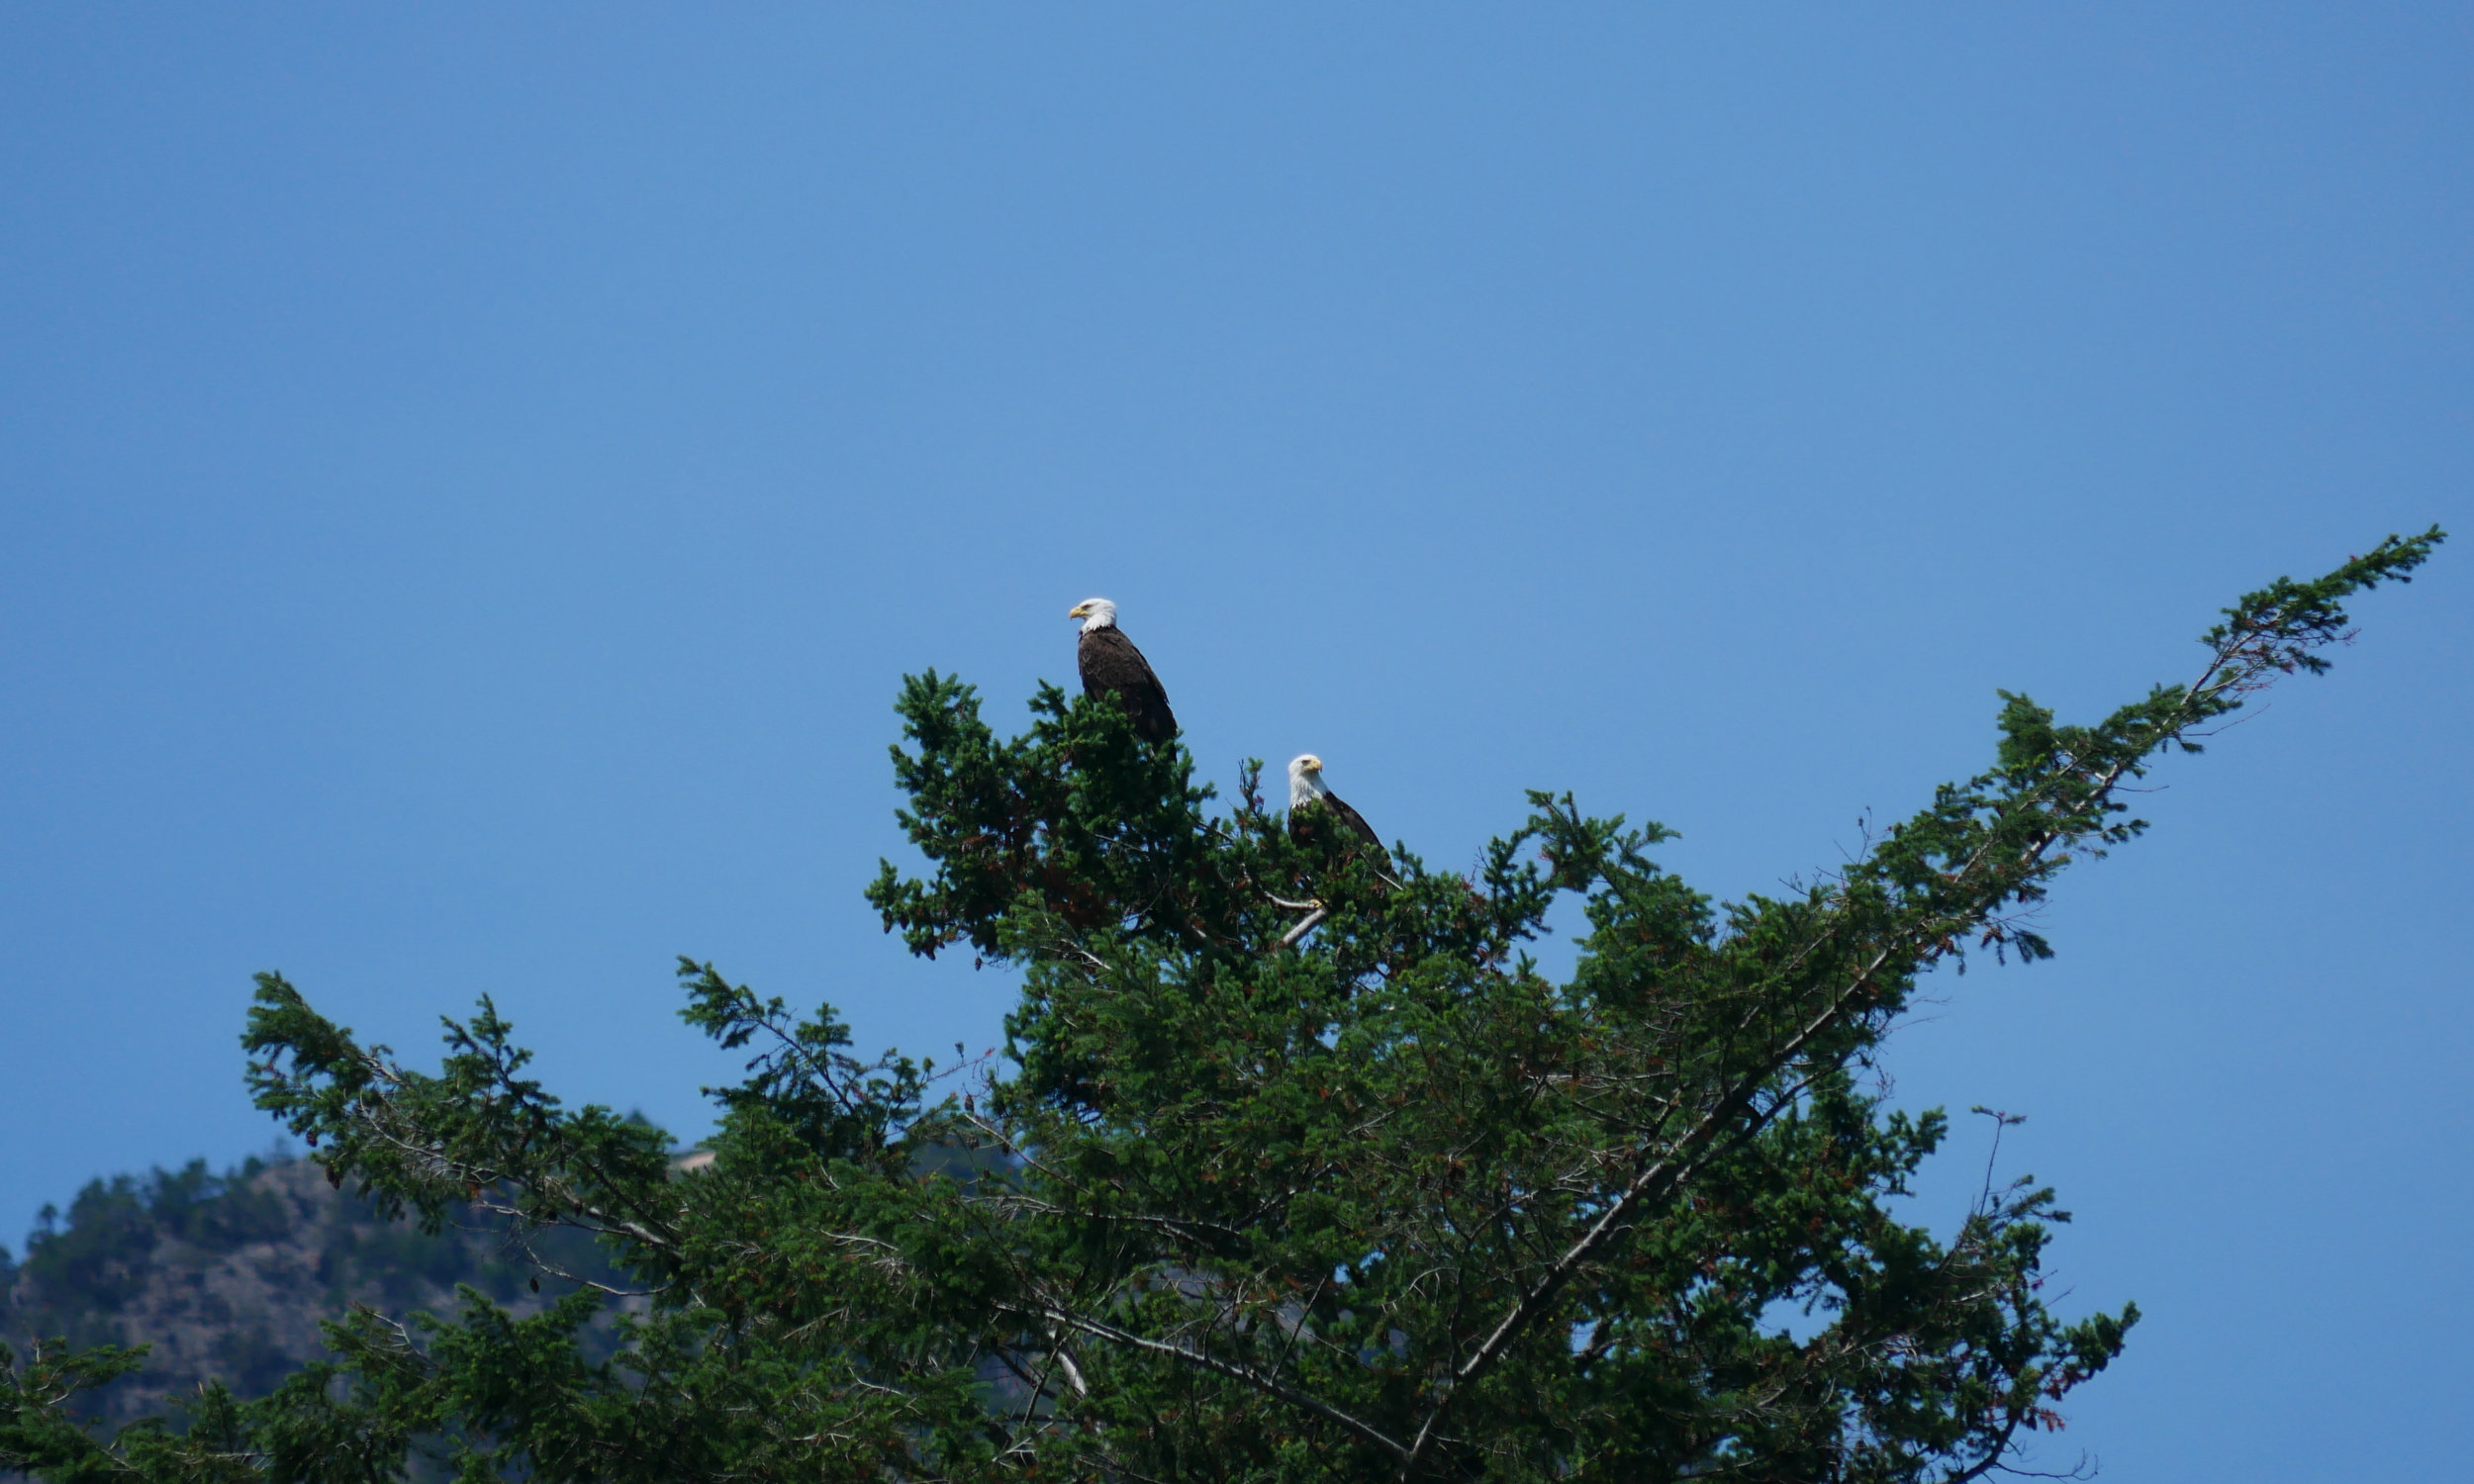 A couple of bald eagles keeping watch over us.